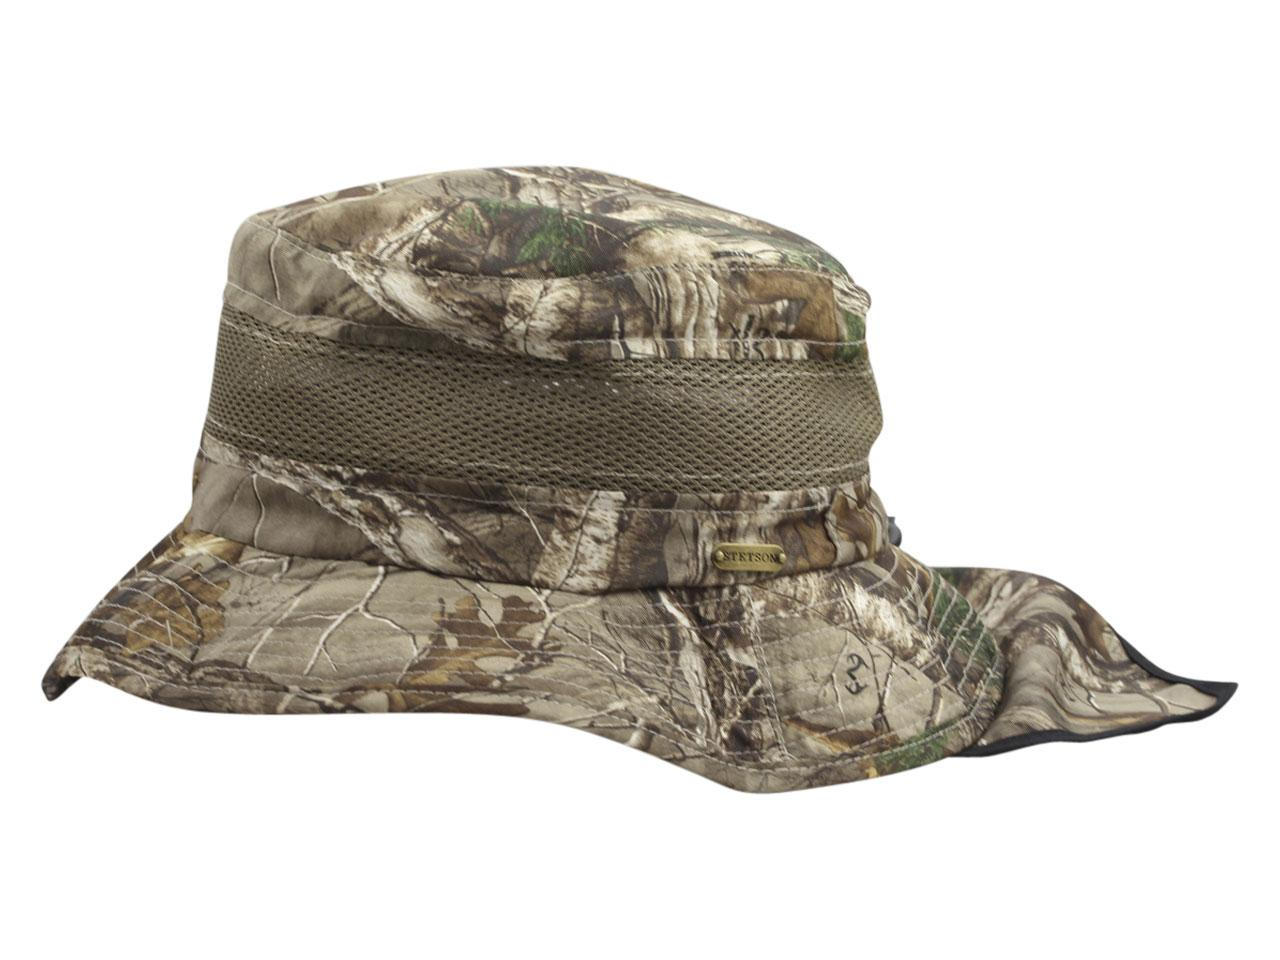 adad5898414 Stetson Men s Realtree Xtra No Fly Zone Insect Repellent Boonie Hat by  Stetson. 1234